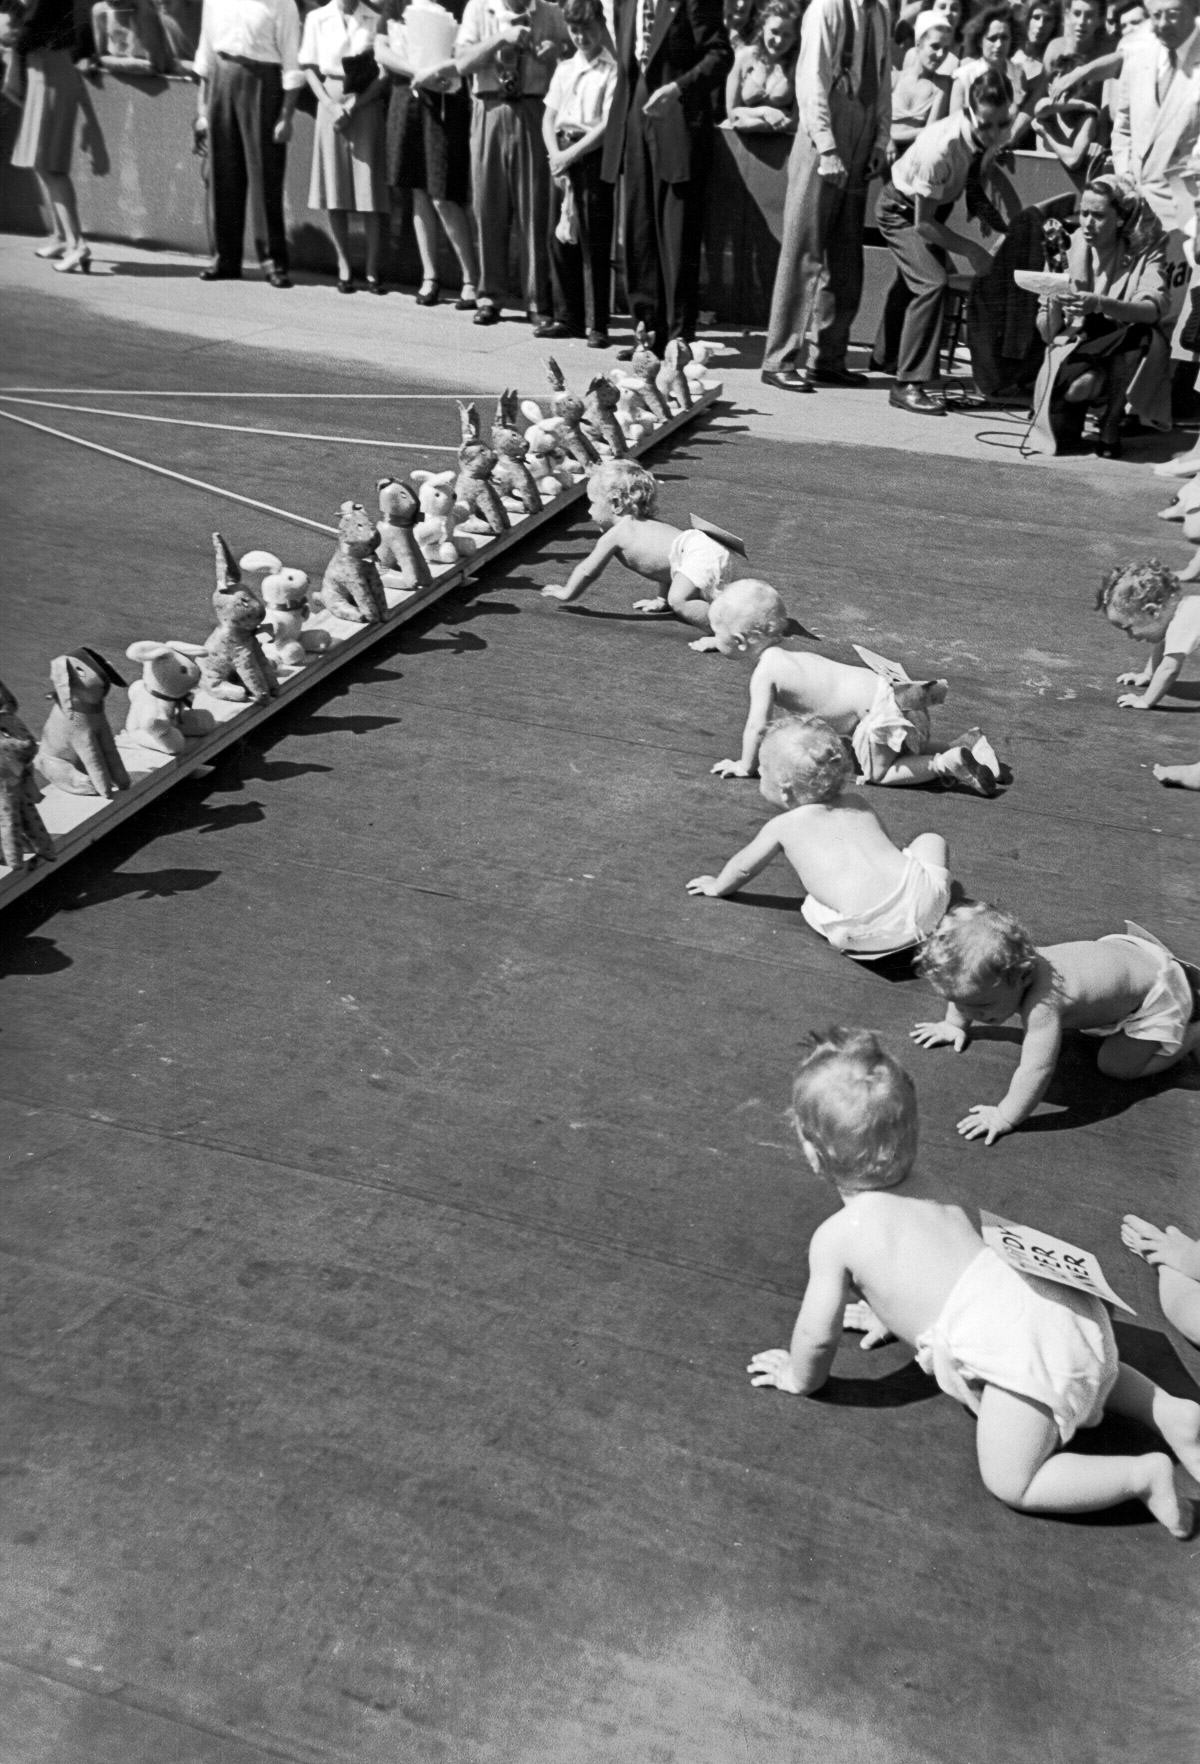 Baby Racing Used To Be A Real Life Actual Sport, And It Was Amazing UNILAD CORNELL CAPATHE LIFE PICTURE COLLECTIONGETTY IMAGES 33